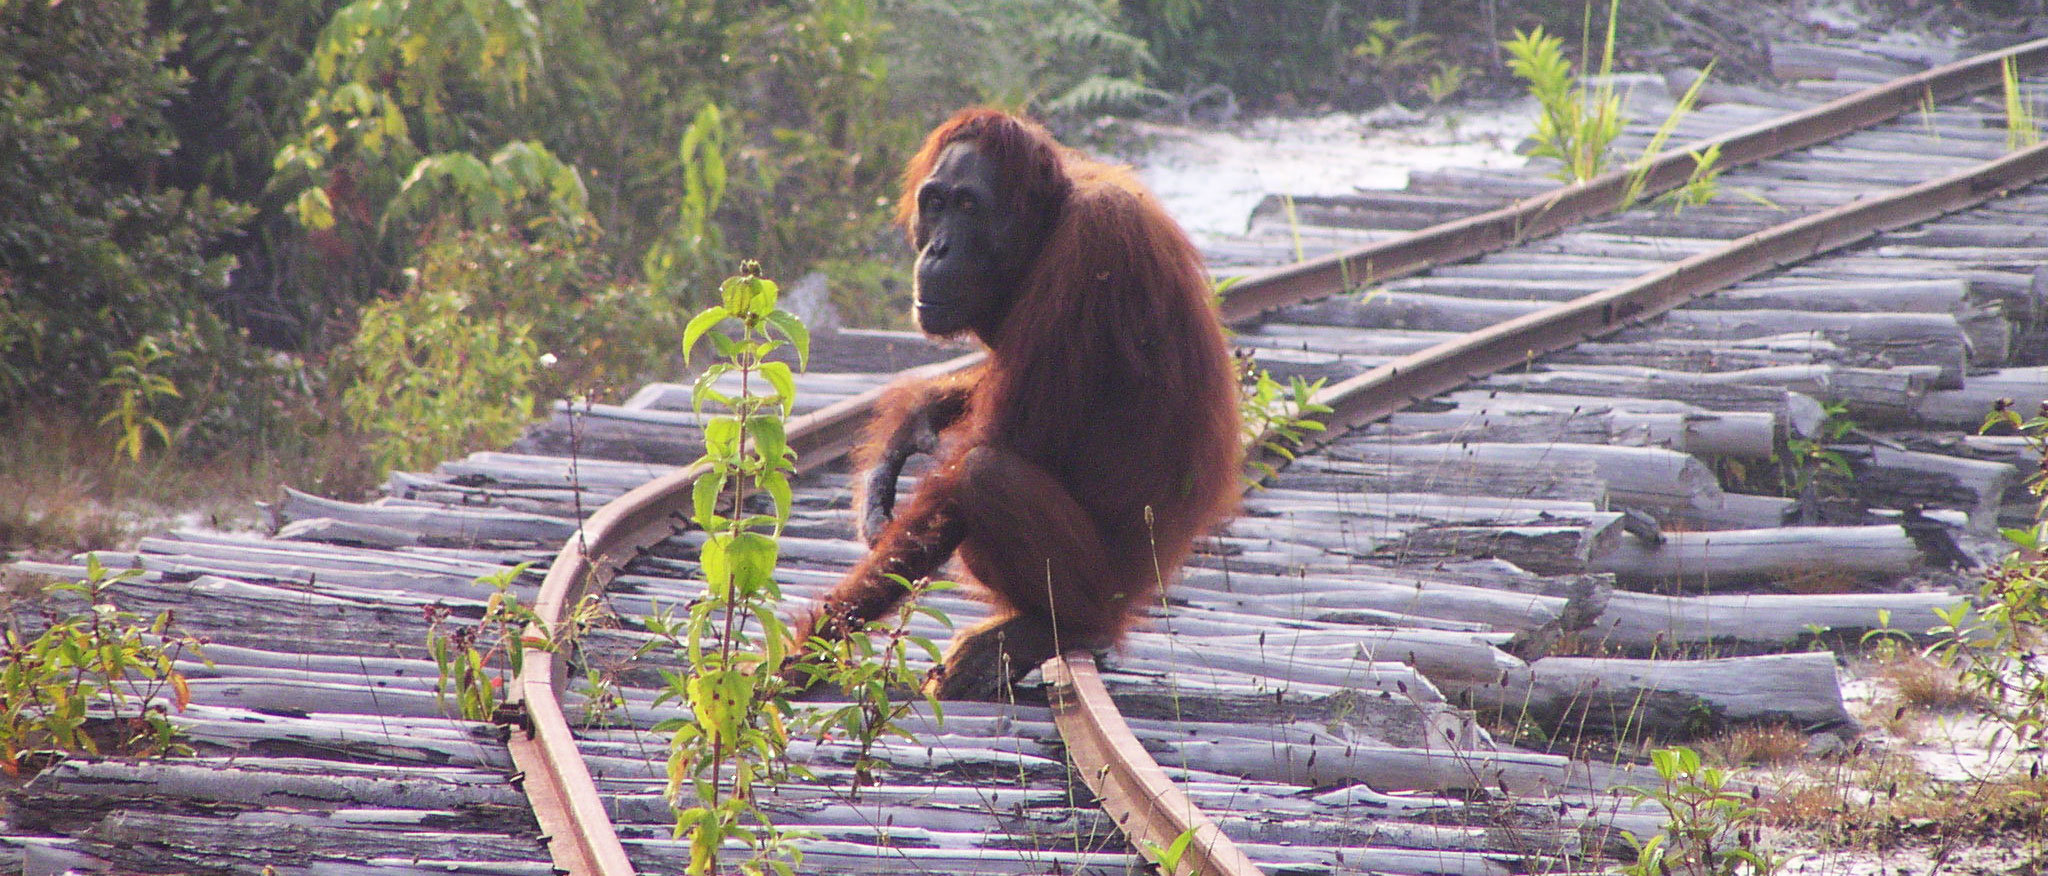 The Bornean orangutan, pictured, is on the decline.